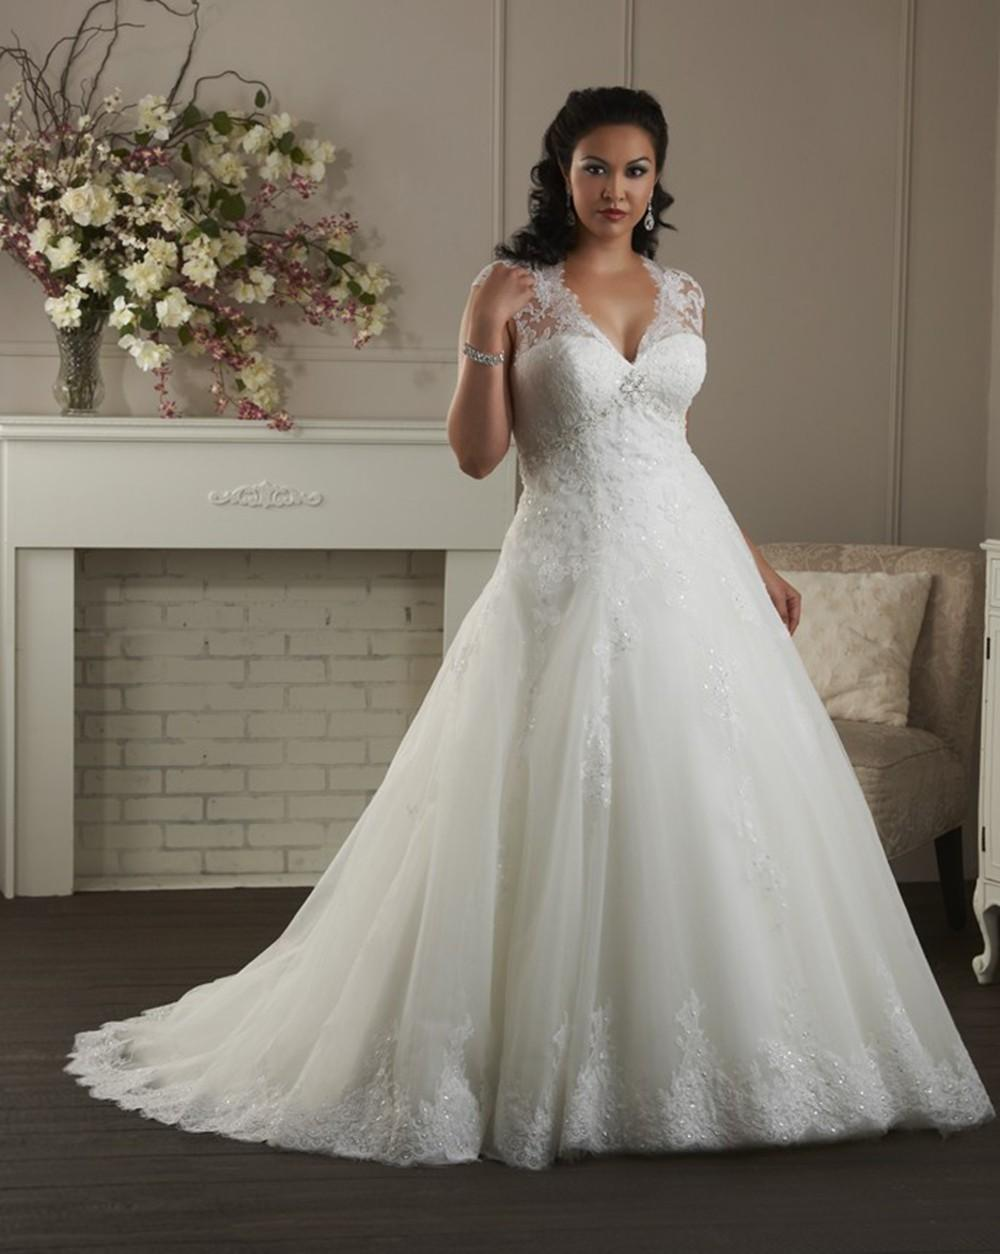 Discount 2015 plus size wedding dresses empire waist v for Empire waist plus size wedding dress